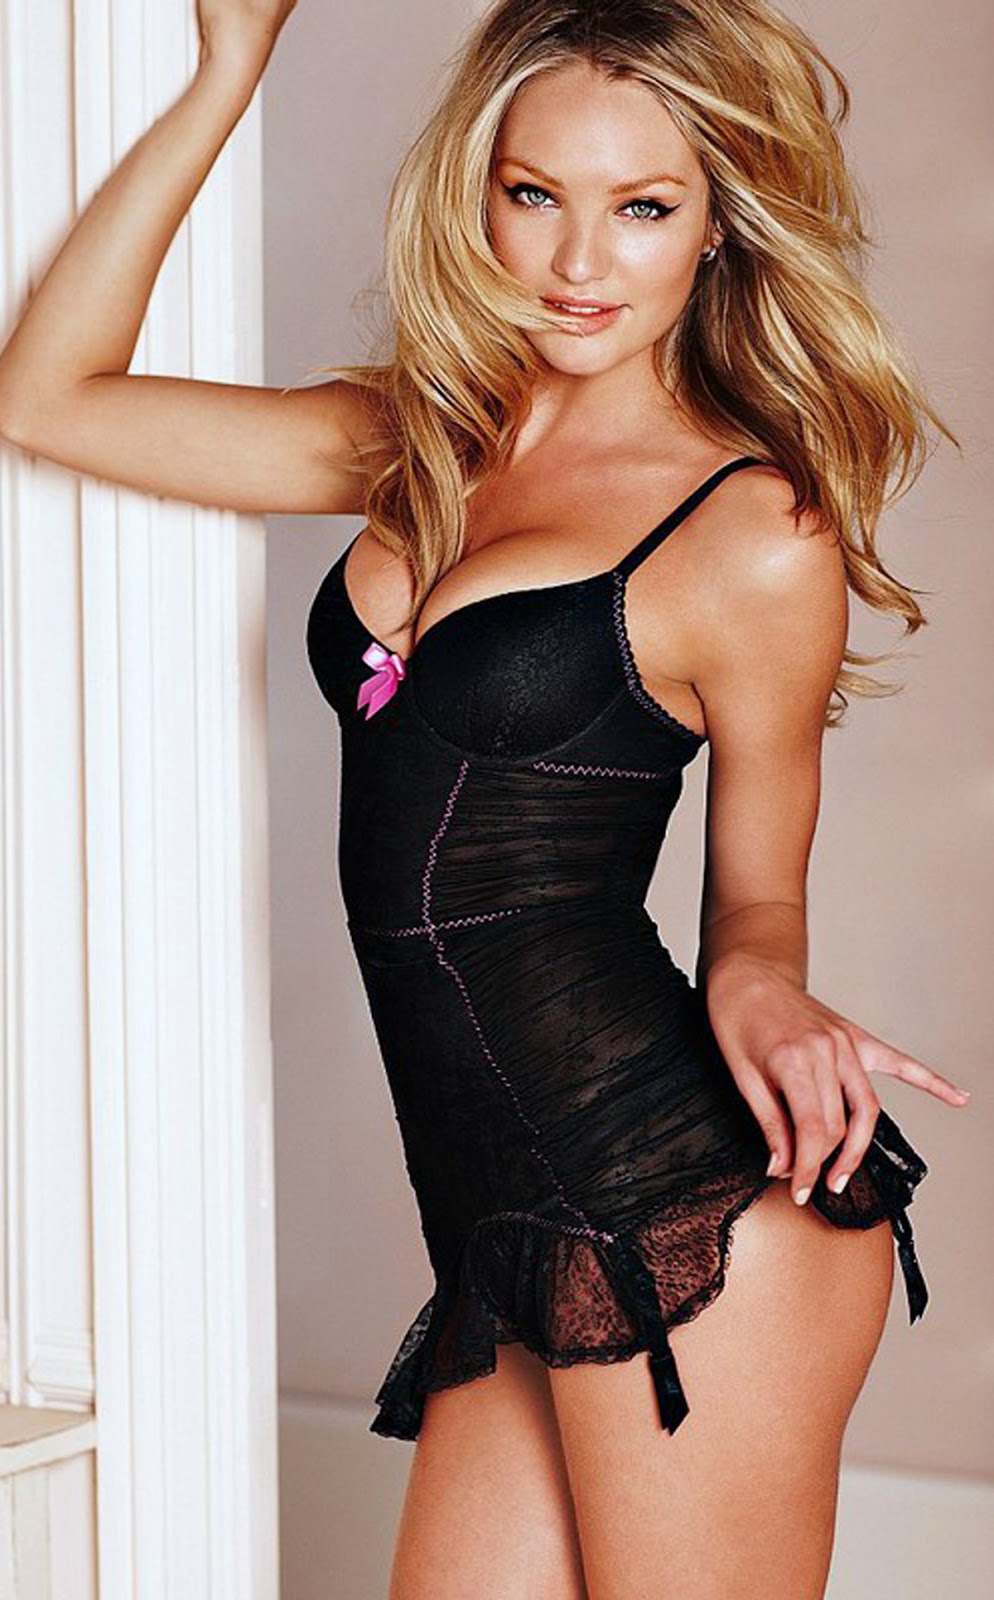 PLUS CANDICE SWANEPOEL VICTORIA'S SECRET BLACK LINGERIE PHOTO.jpg